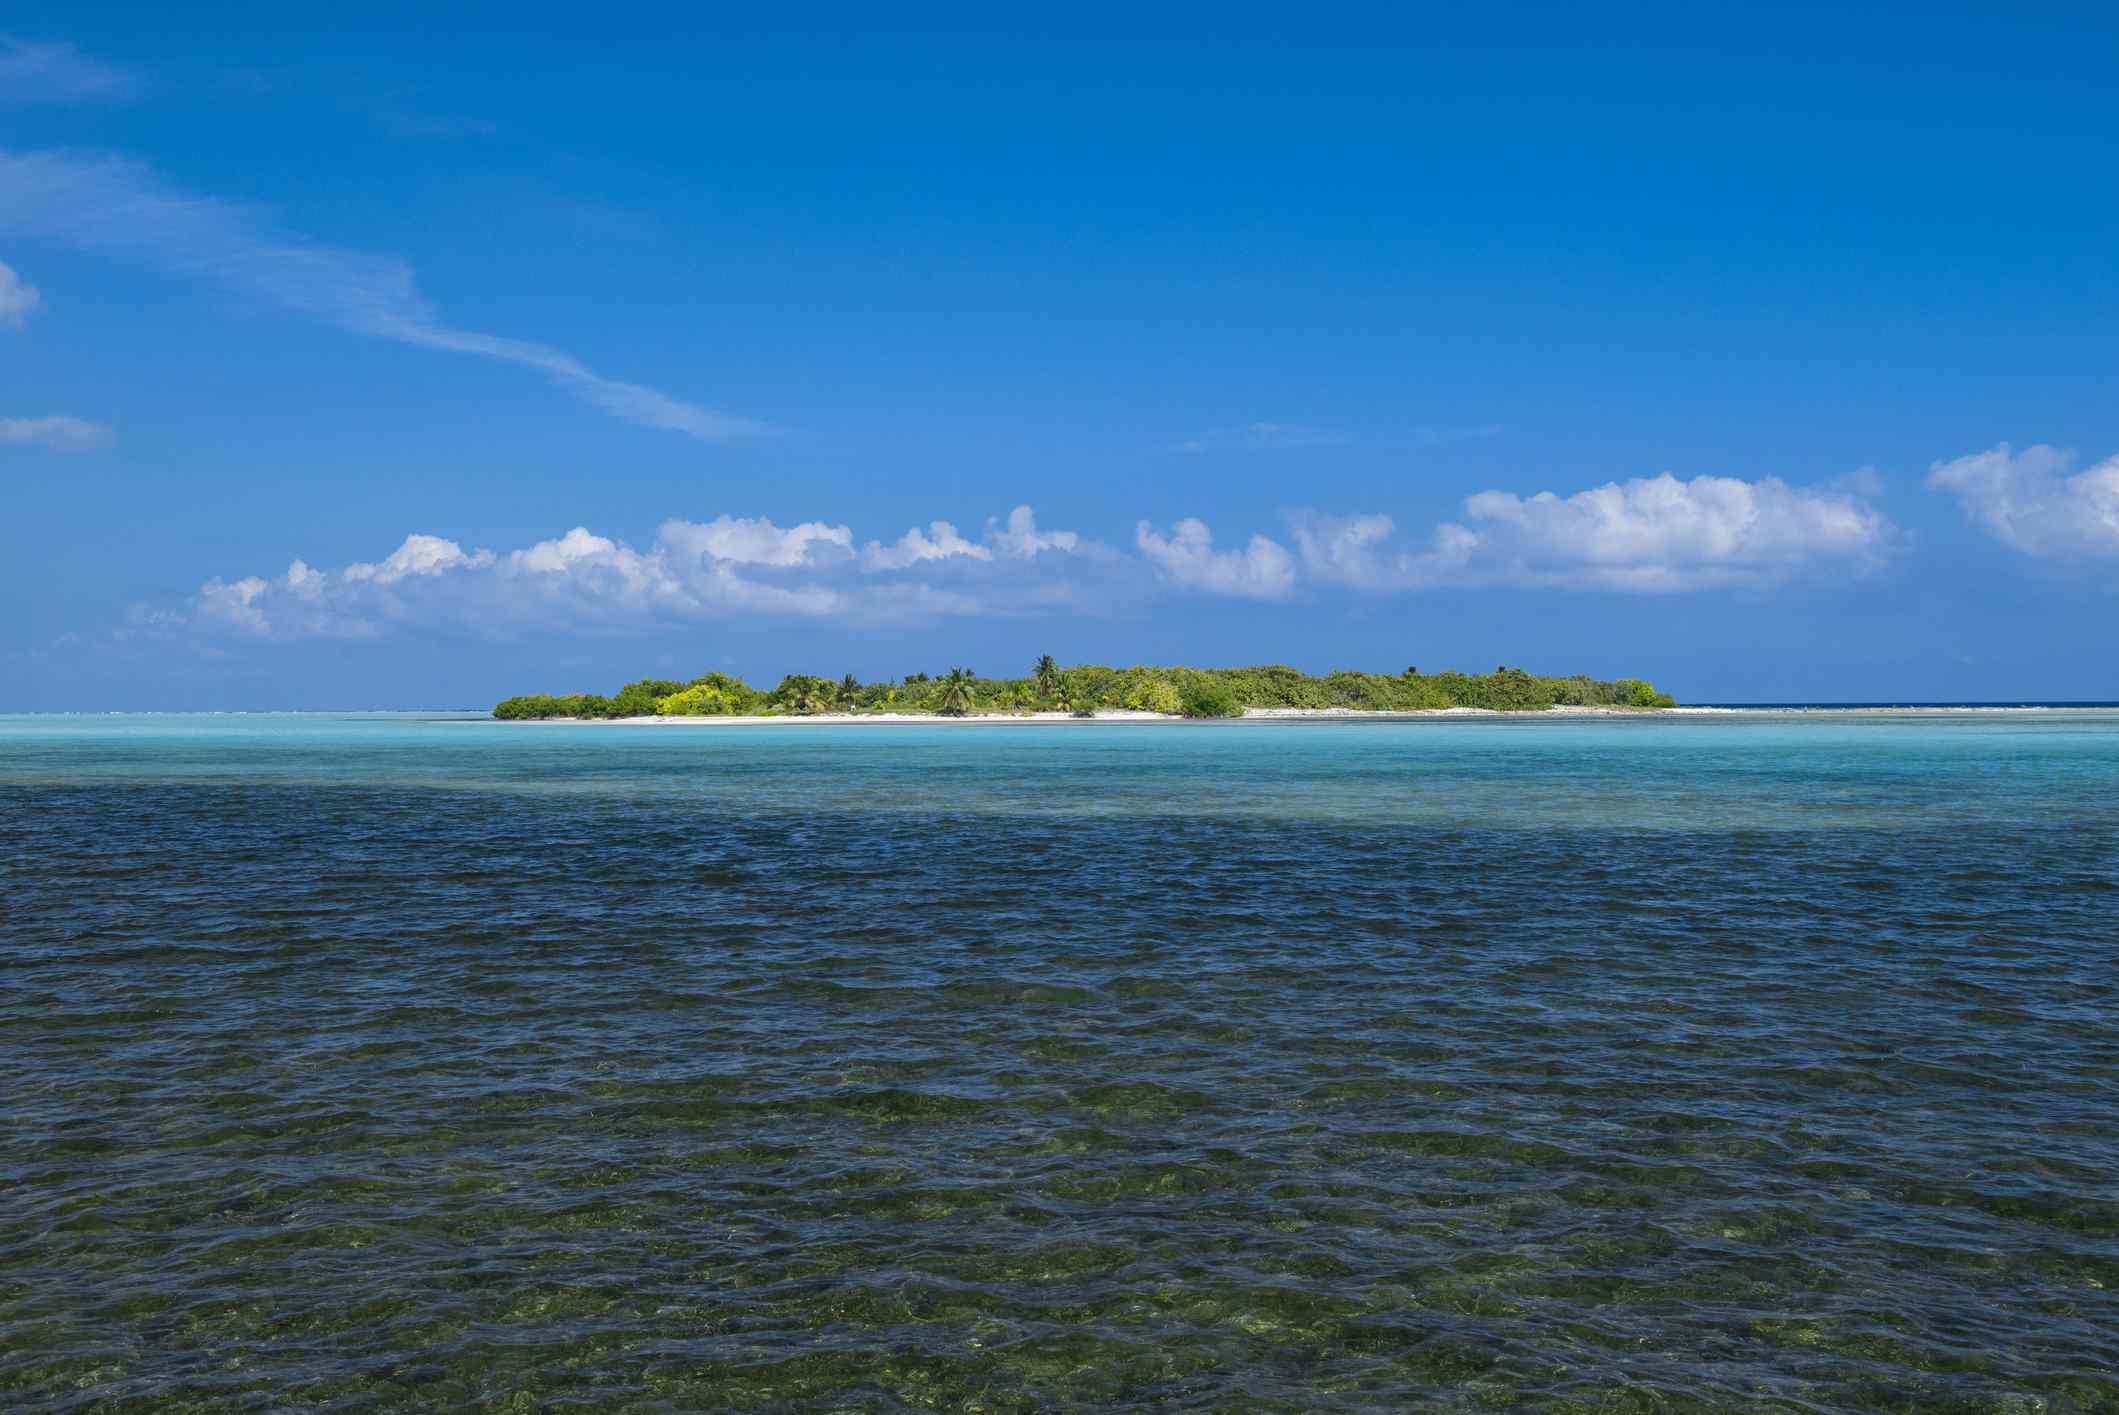 View across the ocean of Owen Island-covered in green trees and white sand-on Little Cayman Island with blue sky and low, white clouds above